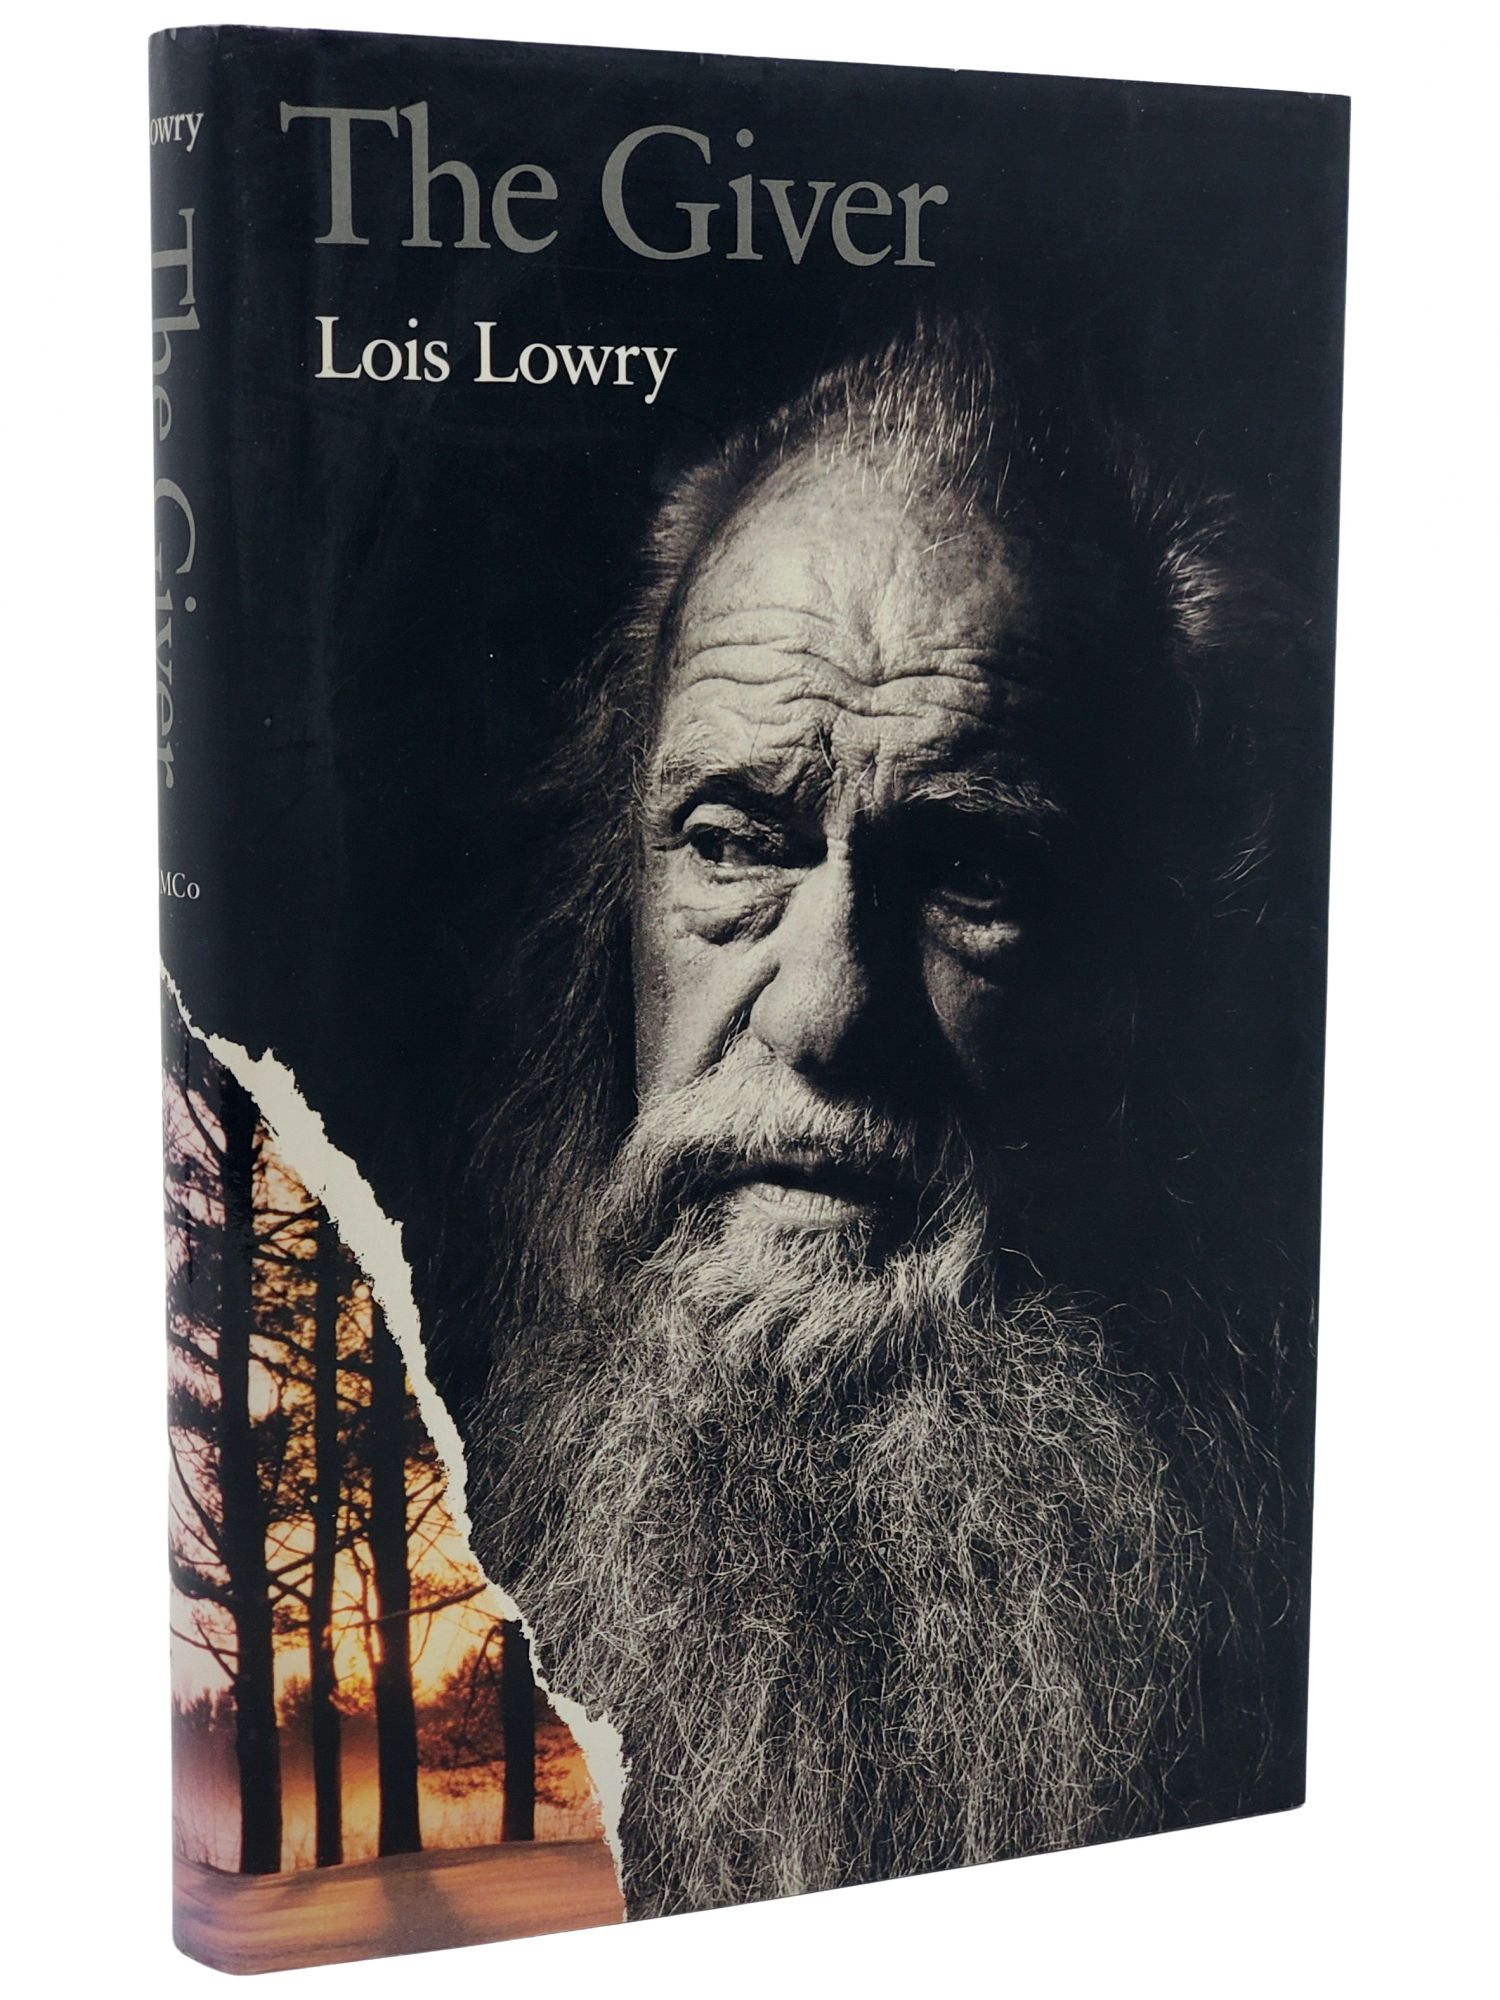 THE GIVER. Lois Lowry.